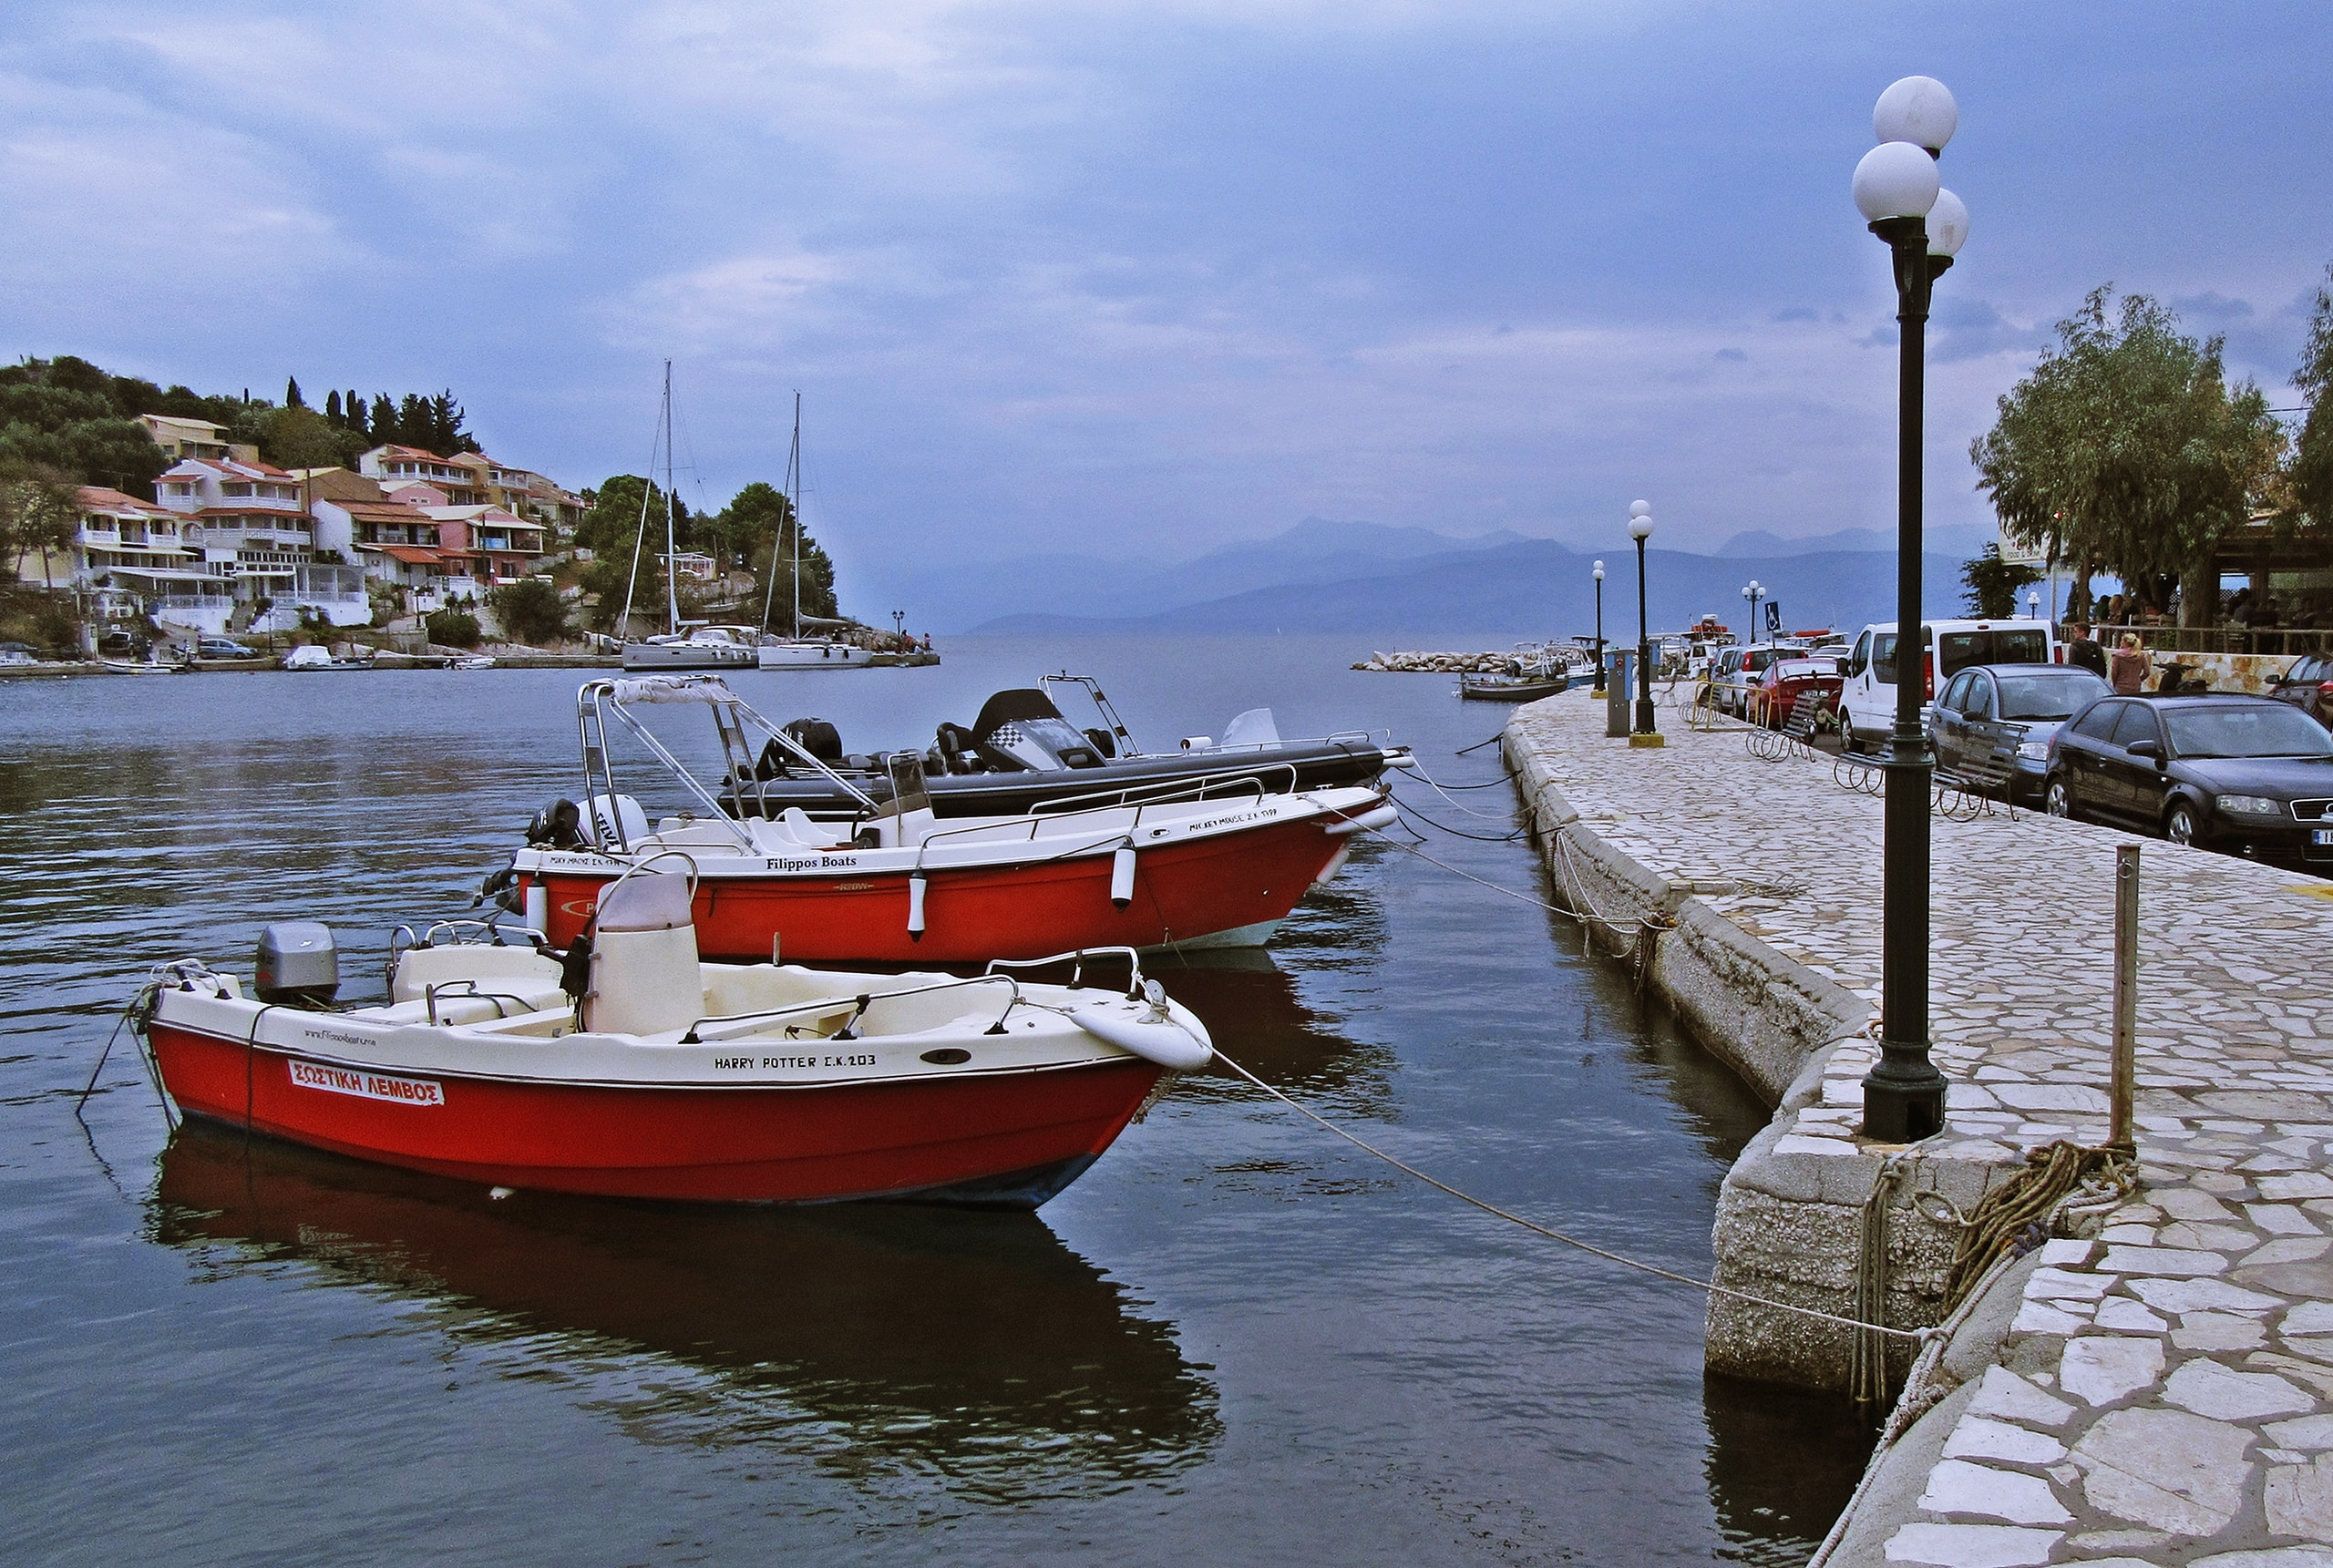 red and white boat on dock during daytime